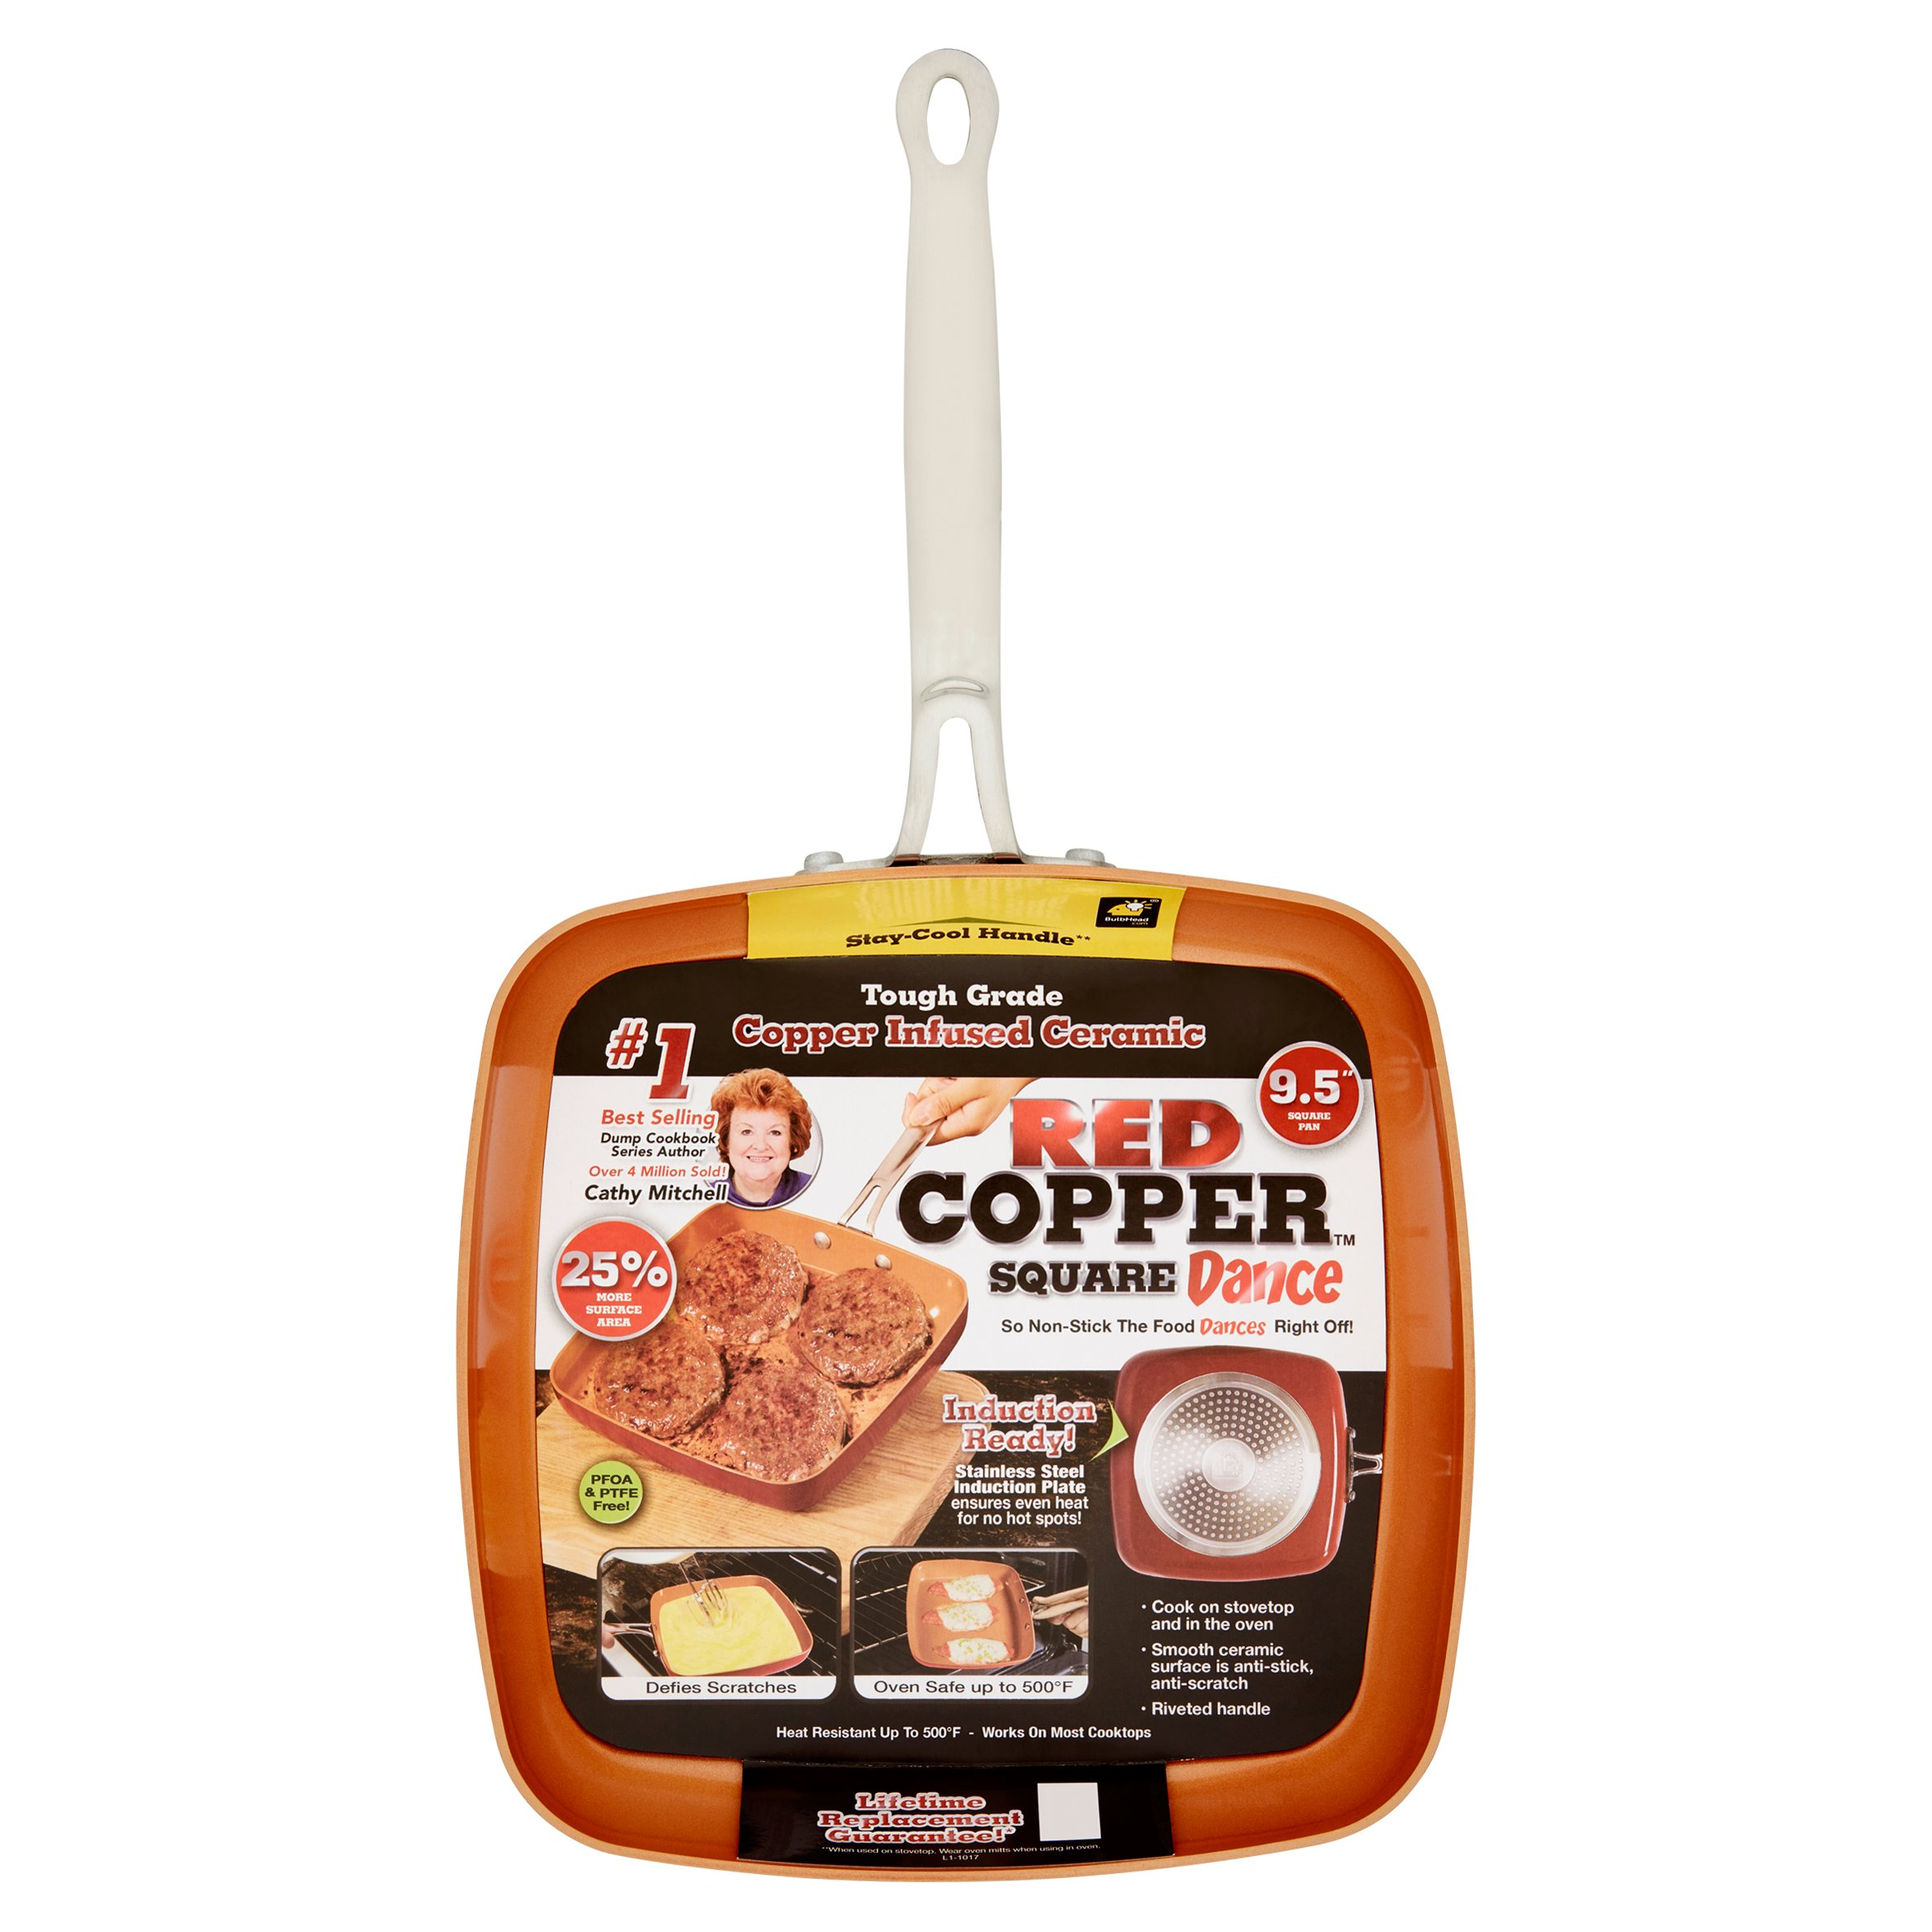 """As Seen On Tv Red Copper Square Dance 9.5"""" Non-Stick Square Pan"""